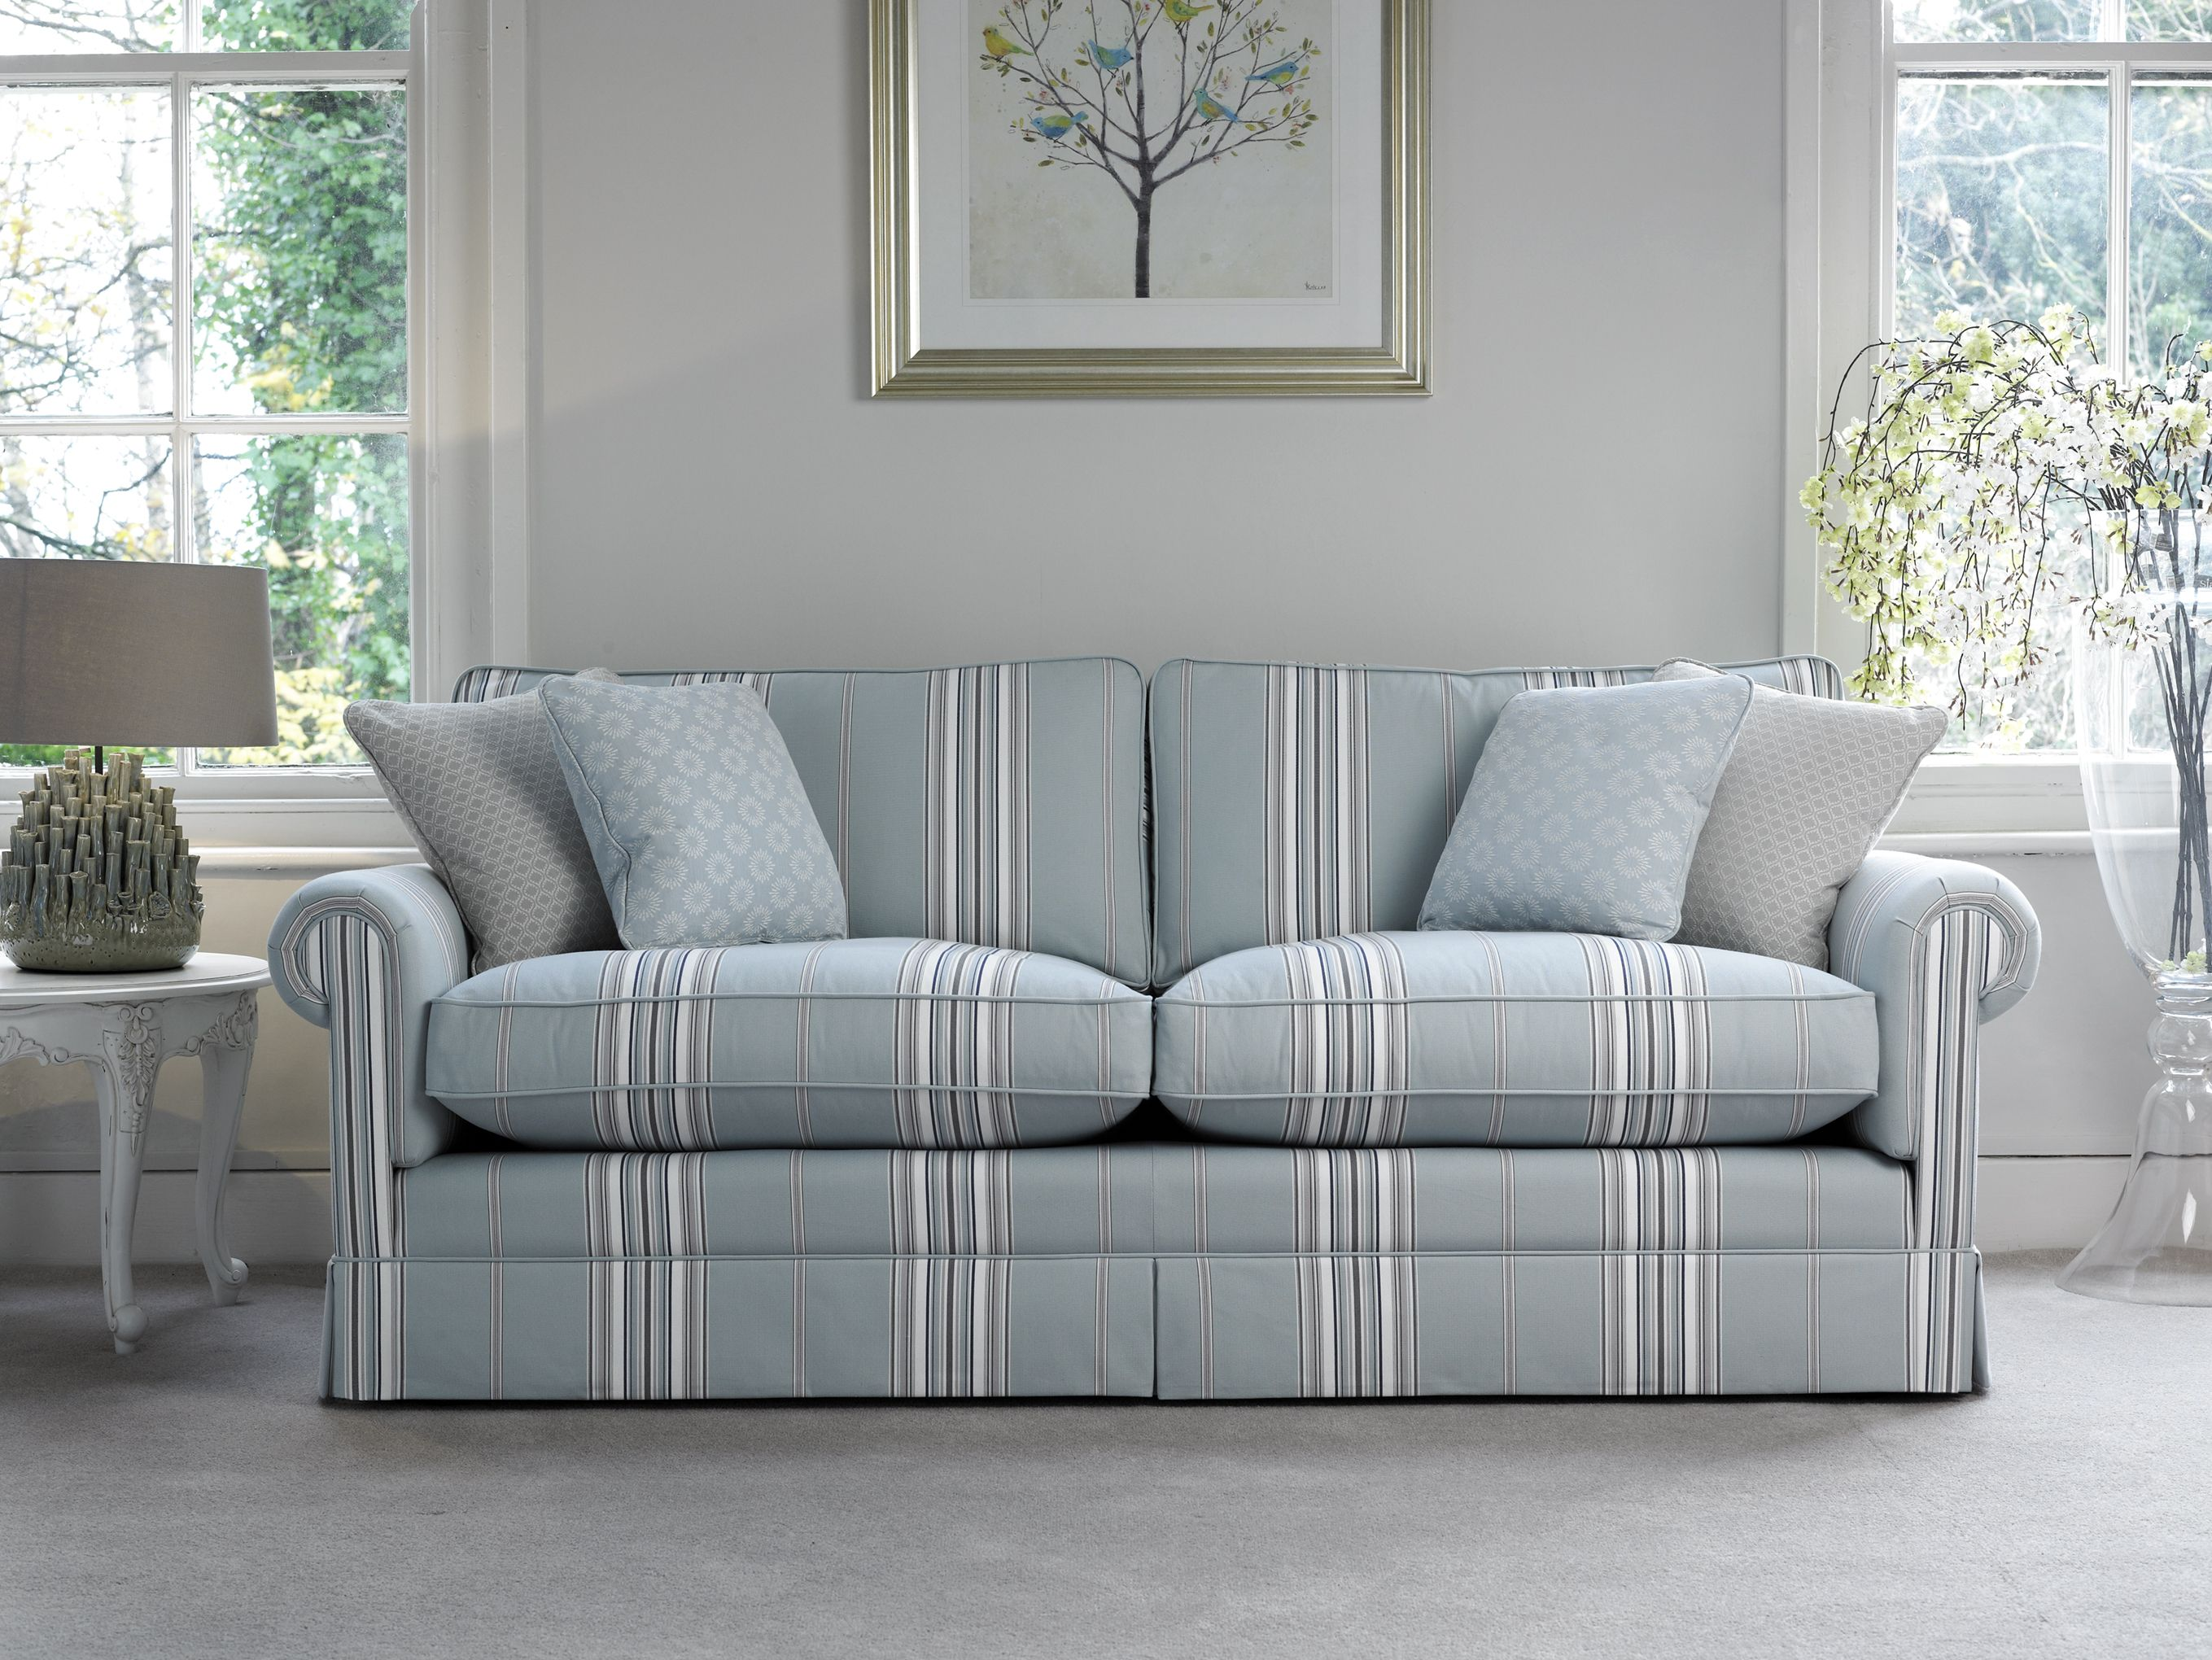 Designer Sofa By Delcor In Blue Striped Fabric